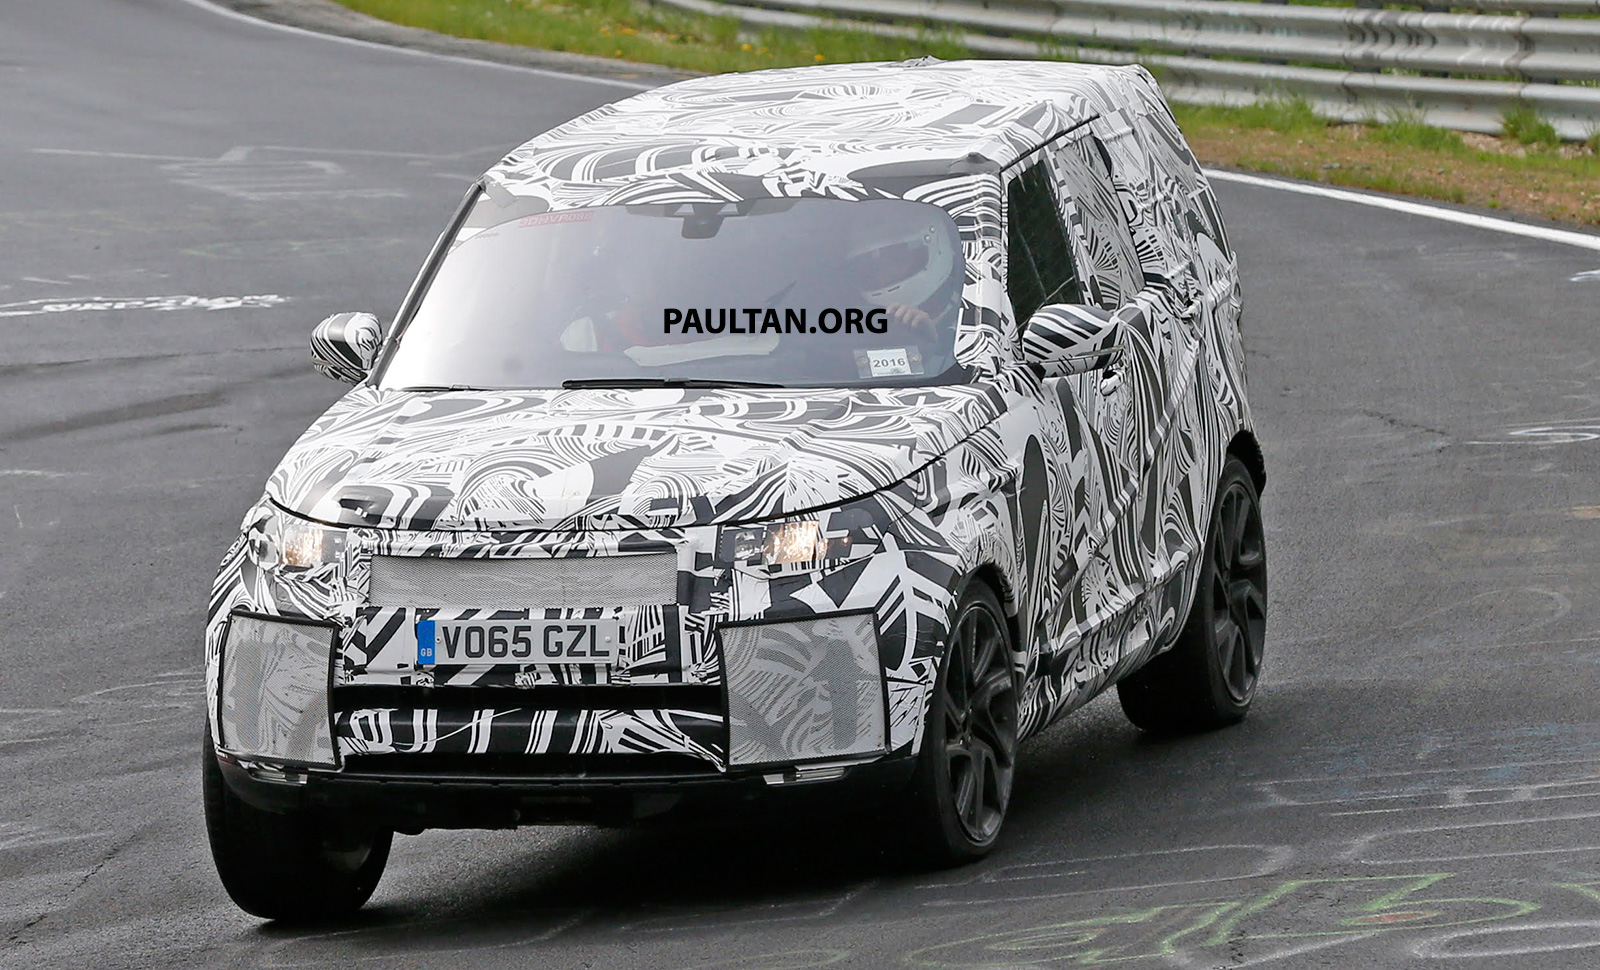 2016 Land Rover >> SPYSHOTS: 2017 Land Rover Discovery 5, in and out Paul Tan - Image 499456